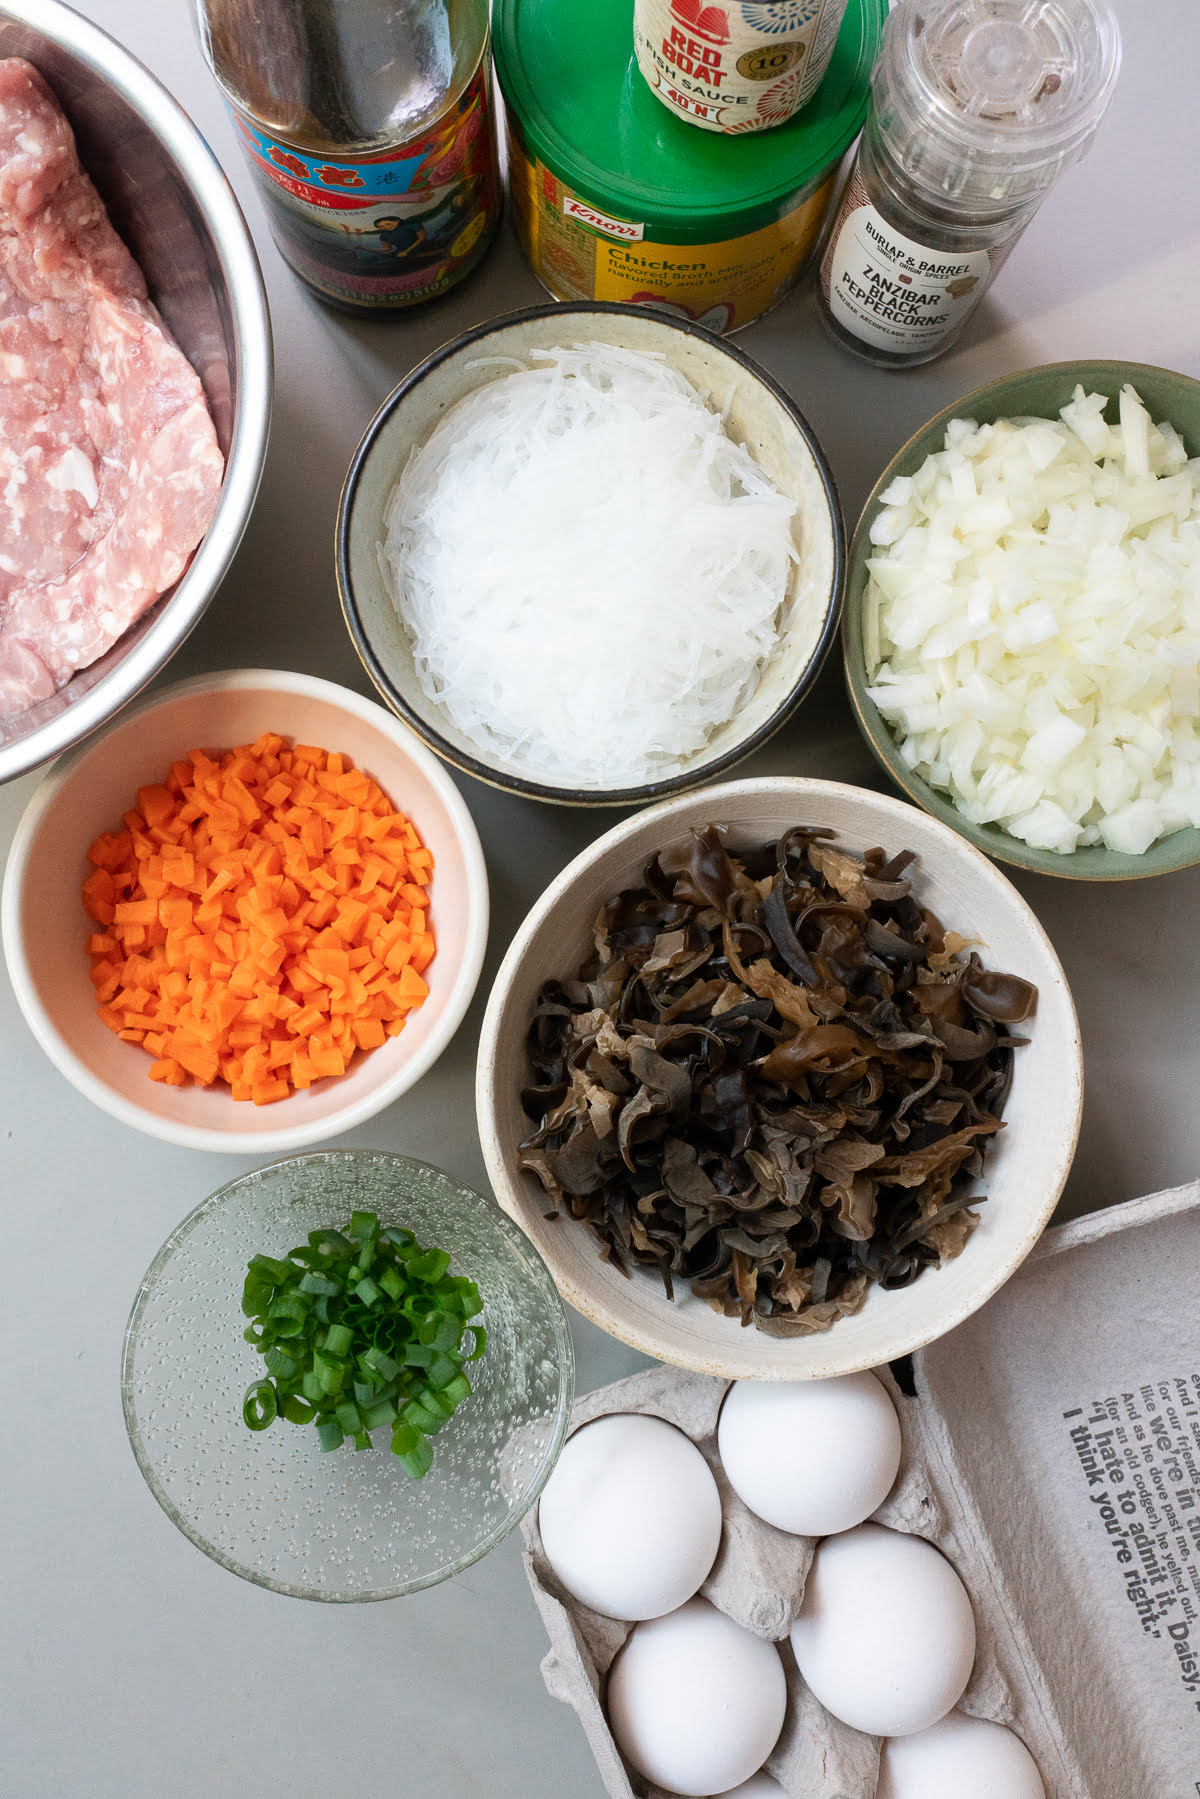 Ingredients for Vietnamese Egg Meatloaf (Cha Trung): ground pork, mung bean noodles, wood ear mushrooms, eggs, carrots, onions, green onions, fish sauce, oyster sauce, chicken bouillon powder, and black pepper.